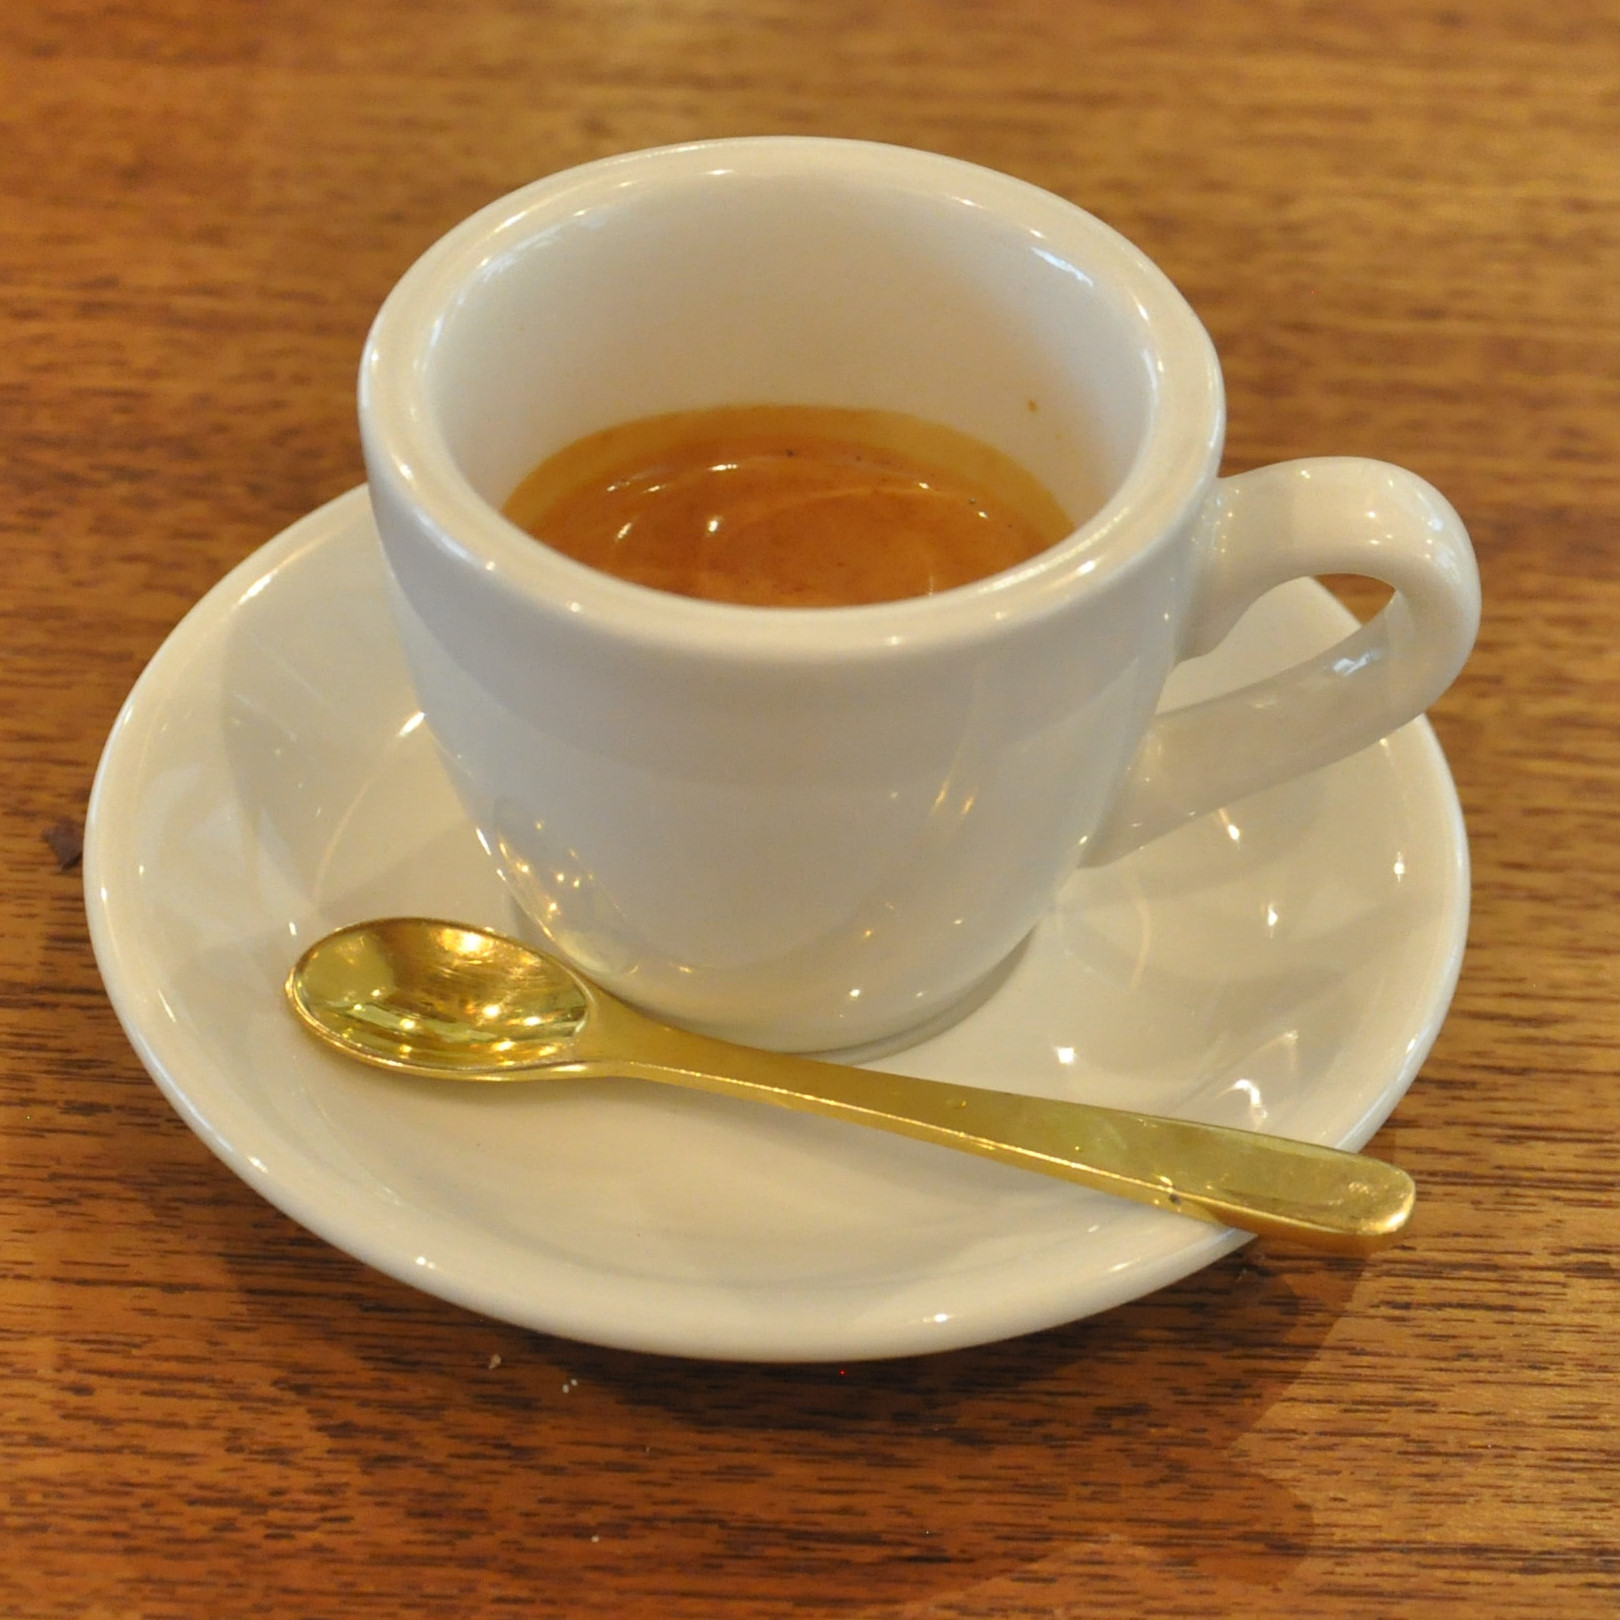 A lovely shot of the house-blend at Nem Espresso & Coffee in Tokyo, served in a classic white cup.